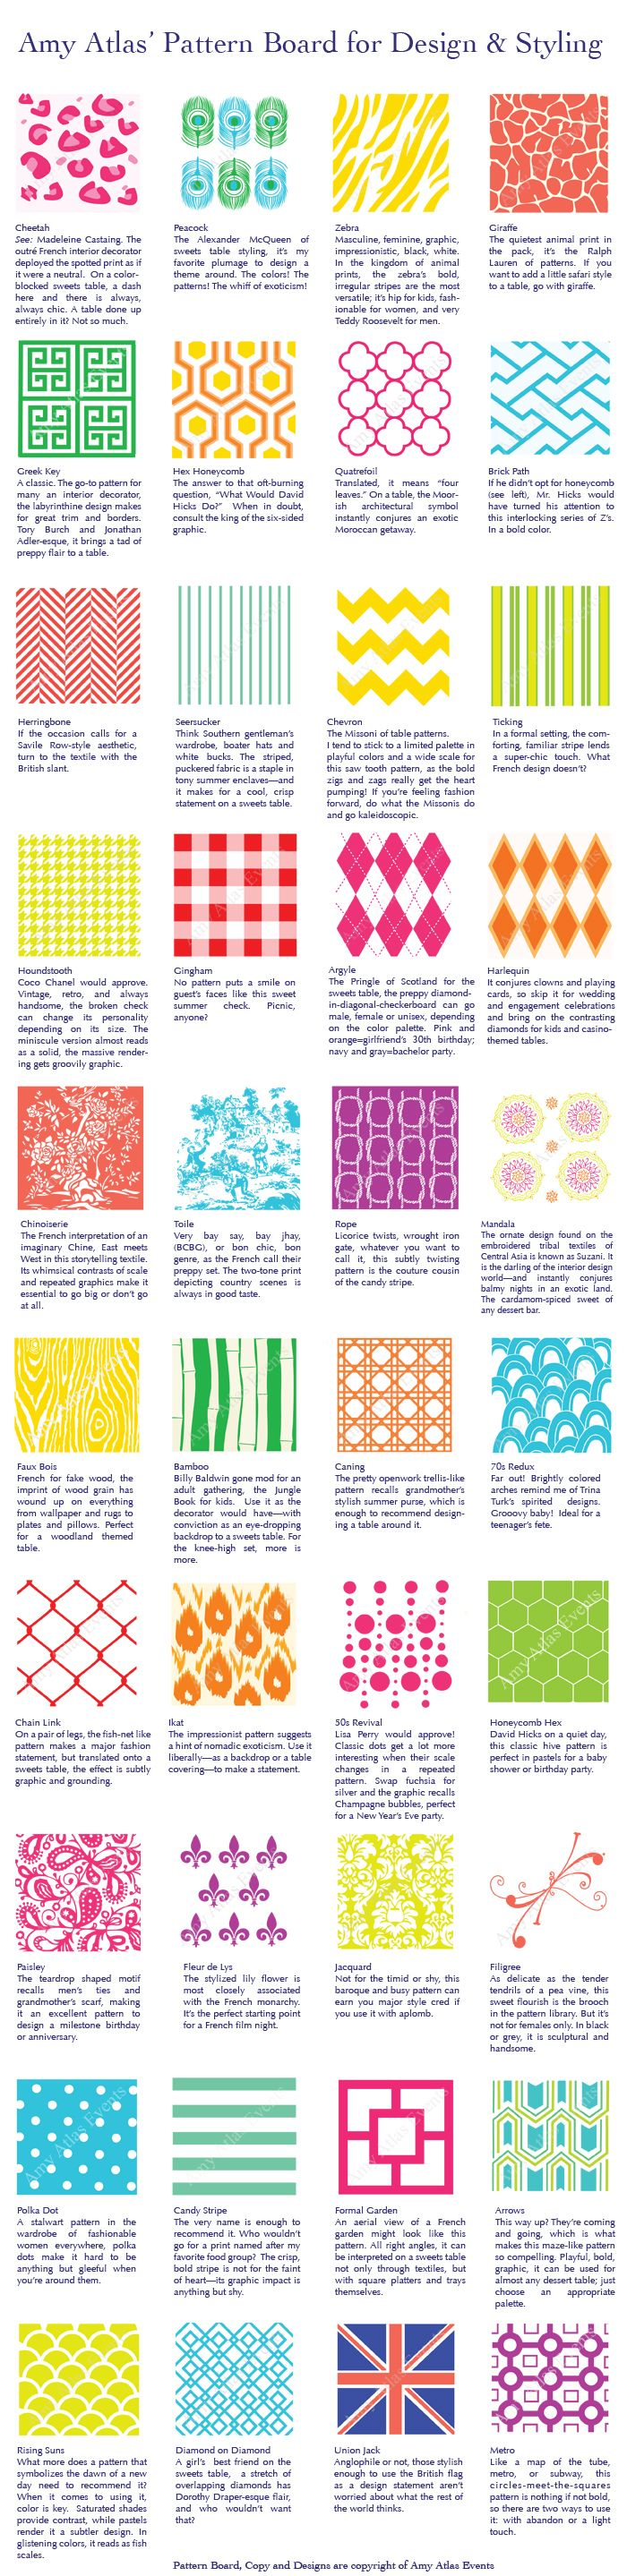 Amy Atlas Pattern Board for Design  Styling  Amy Patterns and Board